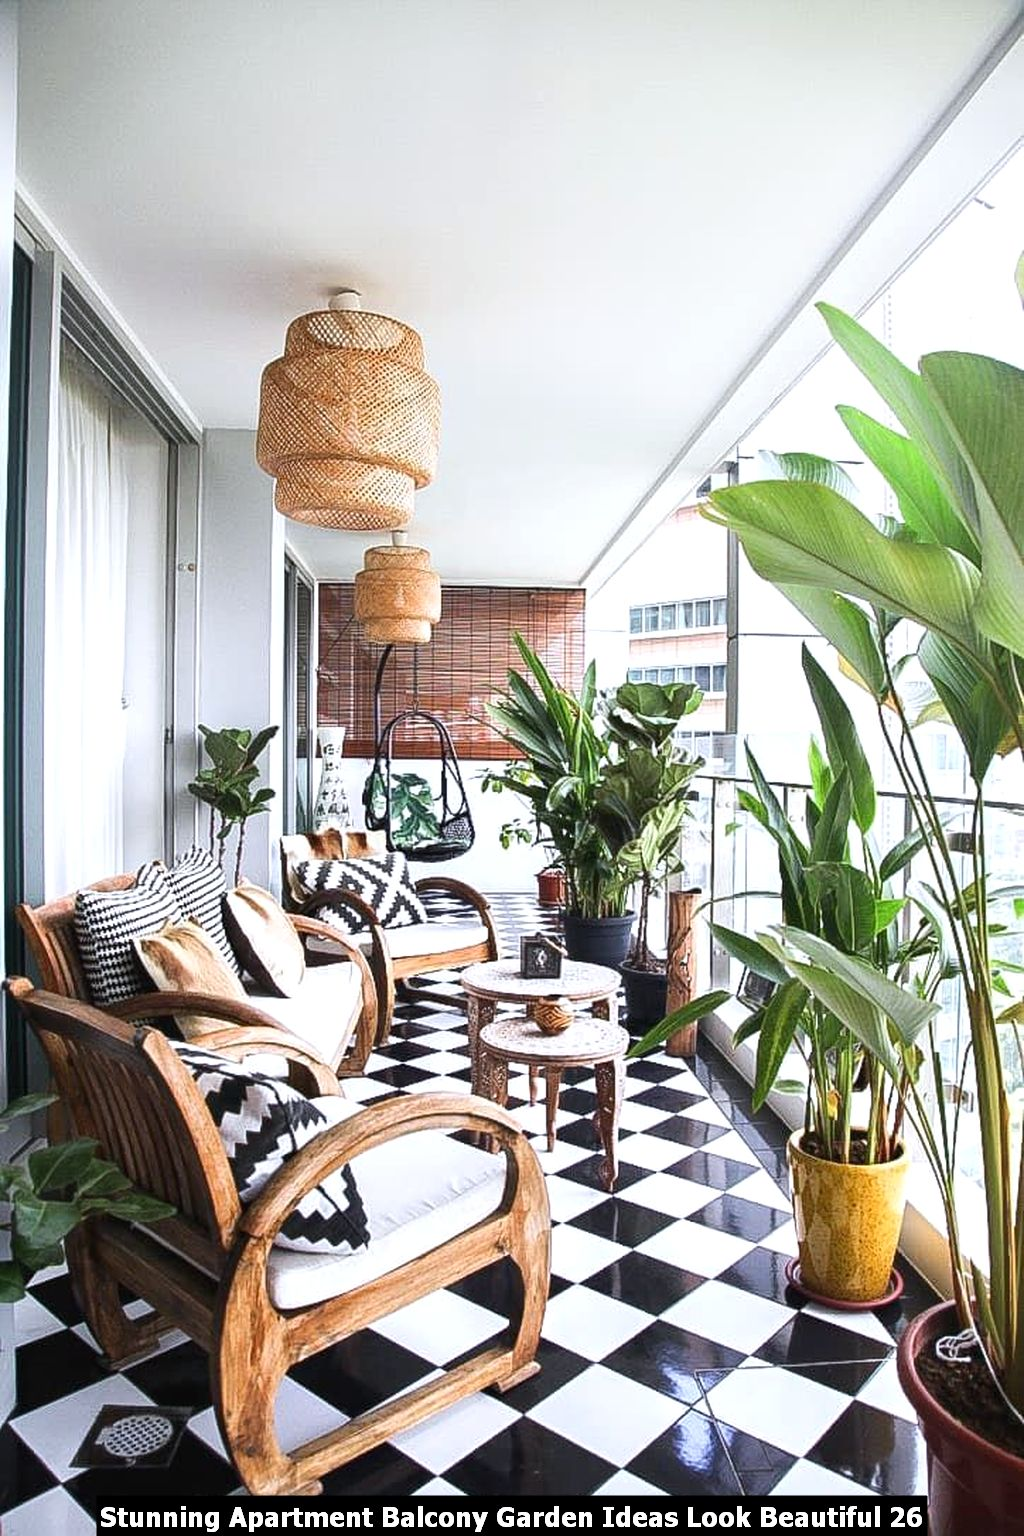 Stunning Apartment Balcony Garden Ideas Look Beautiful 26